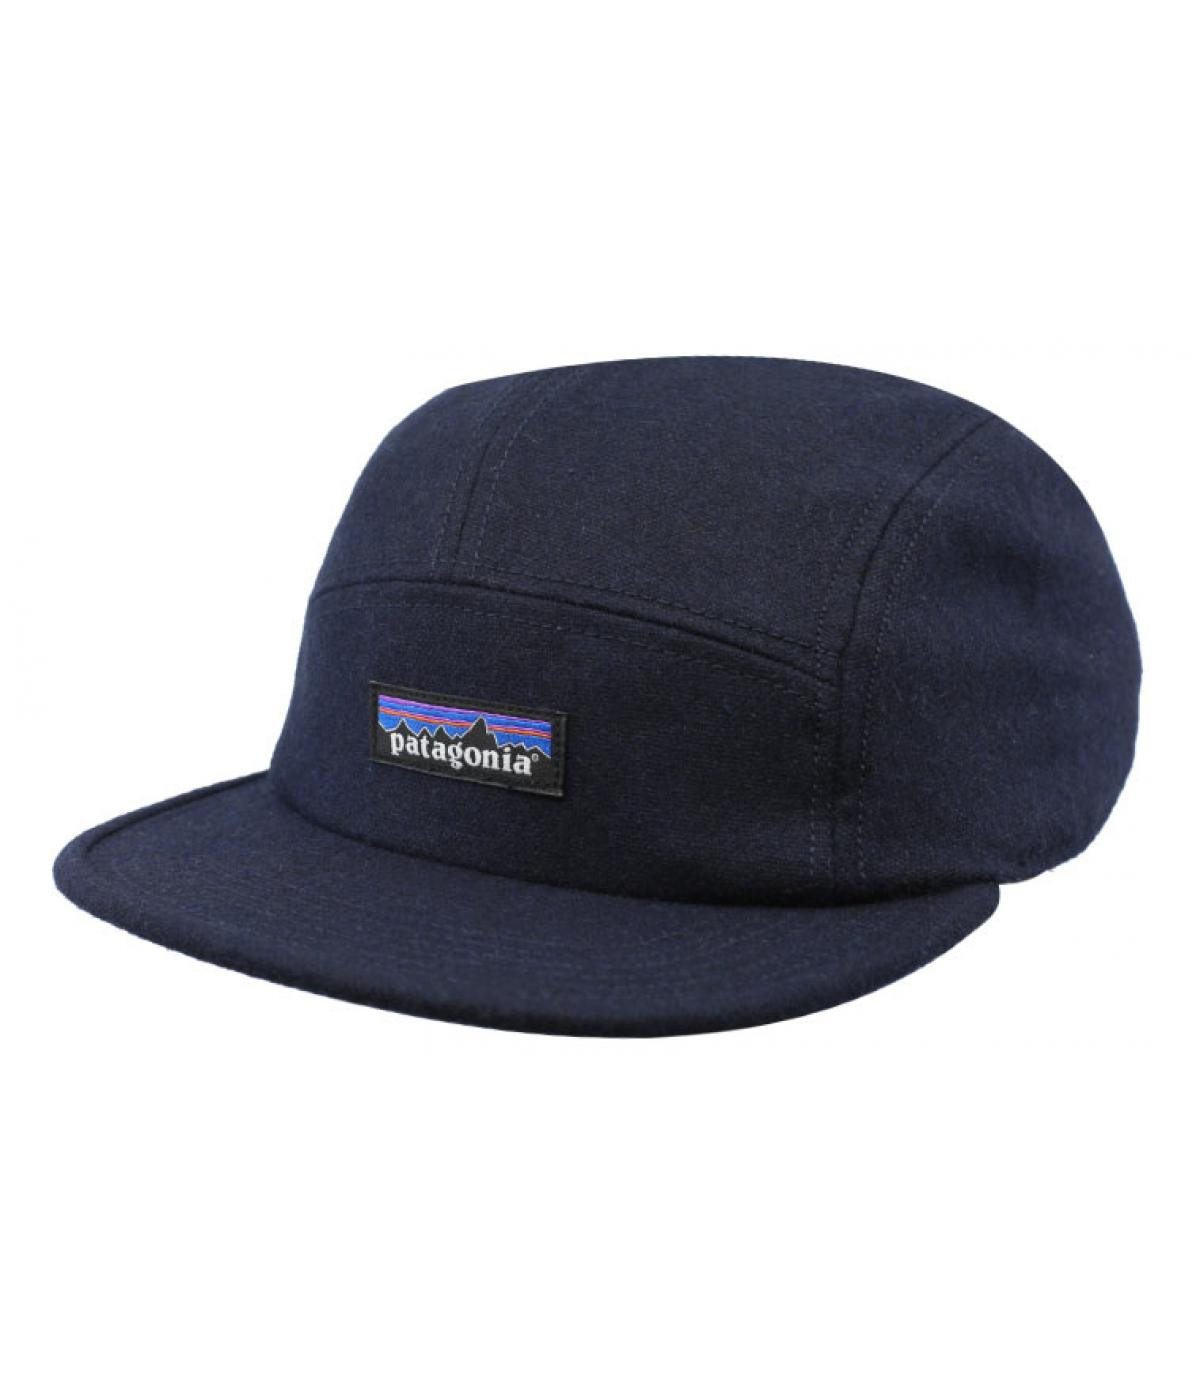 Détails Recycled Wool Cap navy - image 2